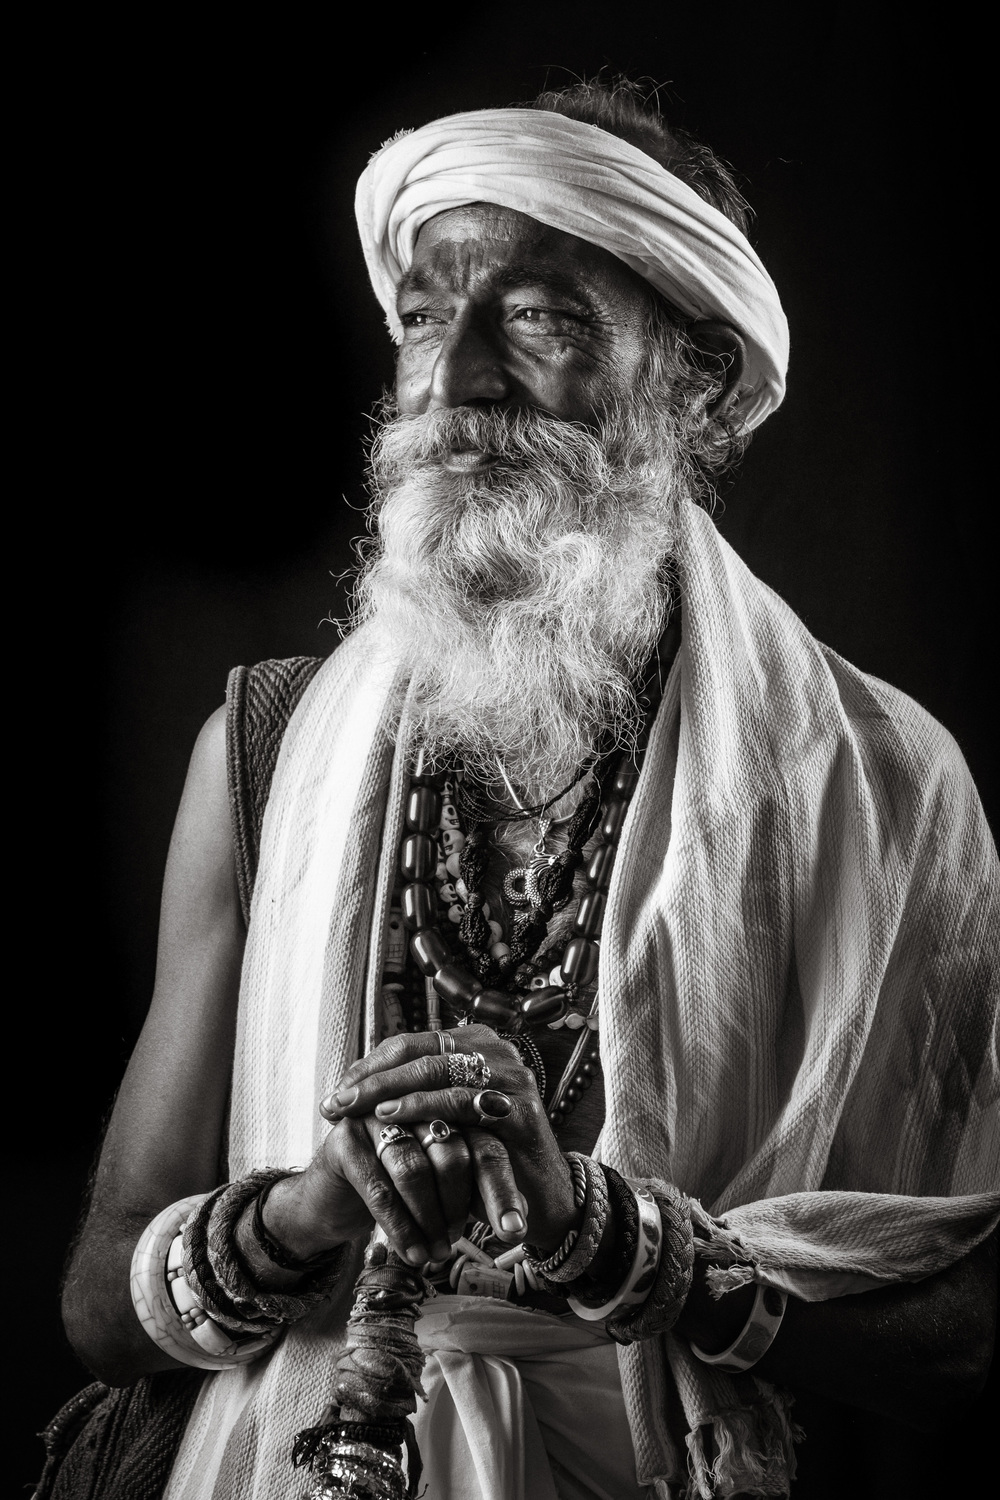 This Sadhu was lit by an SMDV Alpha 110 Softbox with a Bowens mount (available in Europe through  this reseller ), attached to my Jinbei HD 600. The rim light was created by a Cactus RF60, fired through a  gridded SMDV 70 Speedbox .  FUJIFILM X-Pro2 | XF50-140mmF2.8 R LM OIS WR @ 129.2 mm | 1-250 sec at f - 8,0 | ISO 400